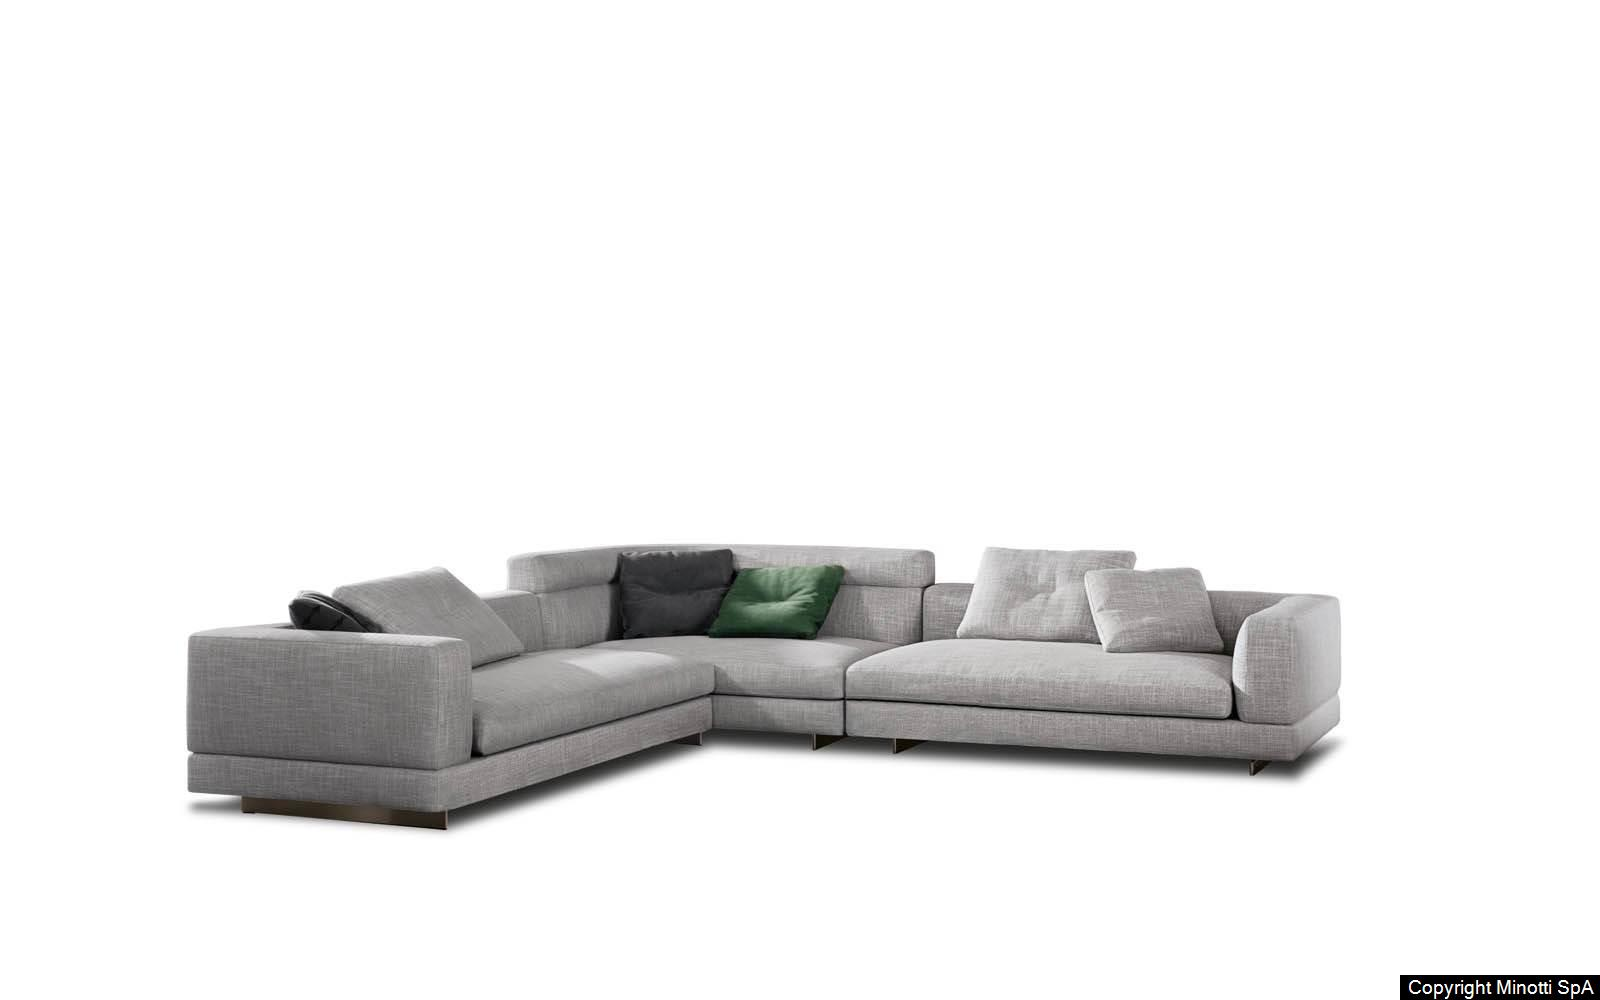 Full Size of Minotti Sofa Couch For Sale India Used Outlet Freeman Dimensions Sleeper Duvet Lawrence Alexander Size Seating System Von Rodolfo Dordoni Design Bruno Wickart Sofa Minotti Sofa